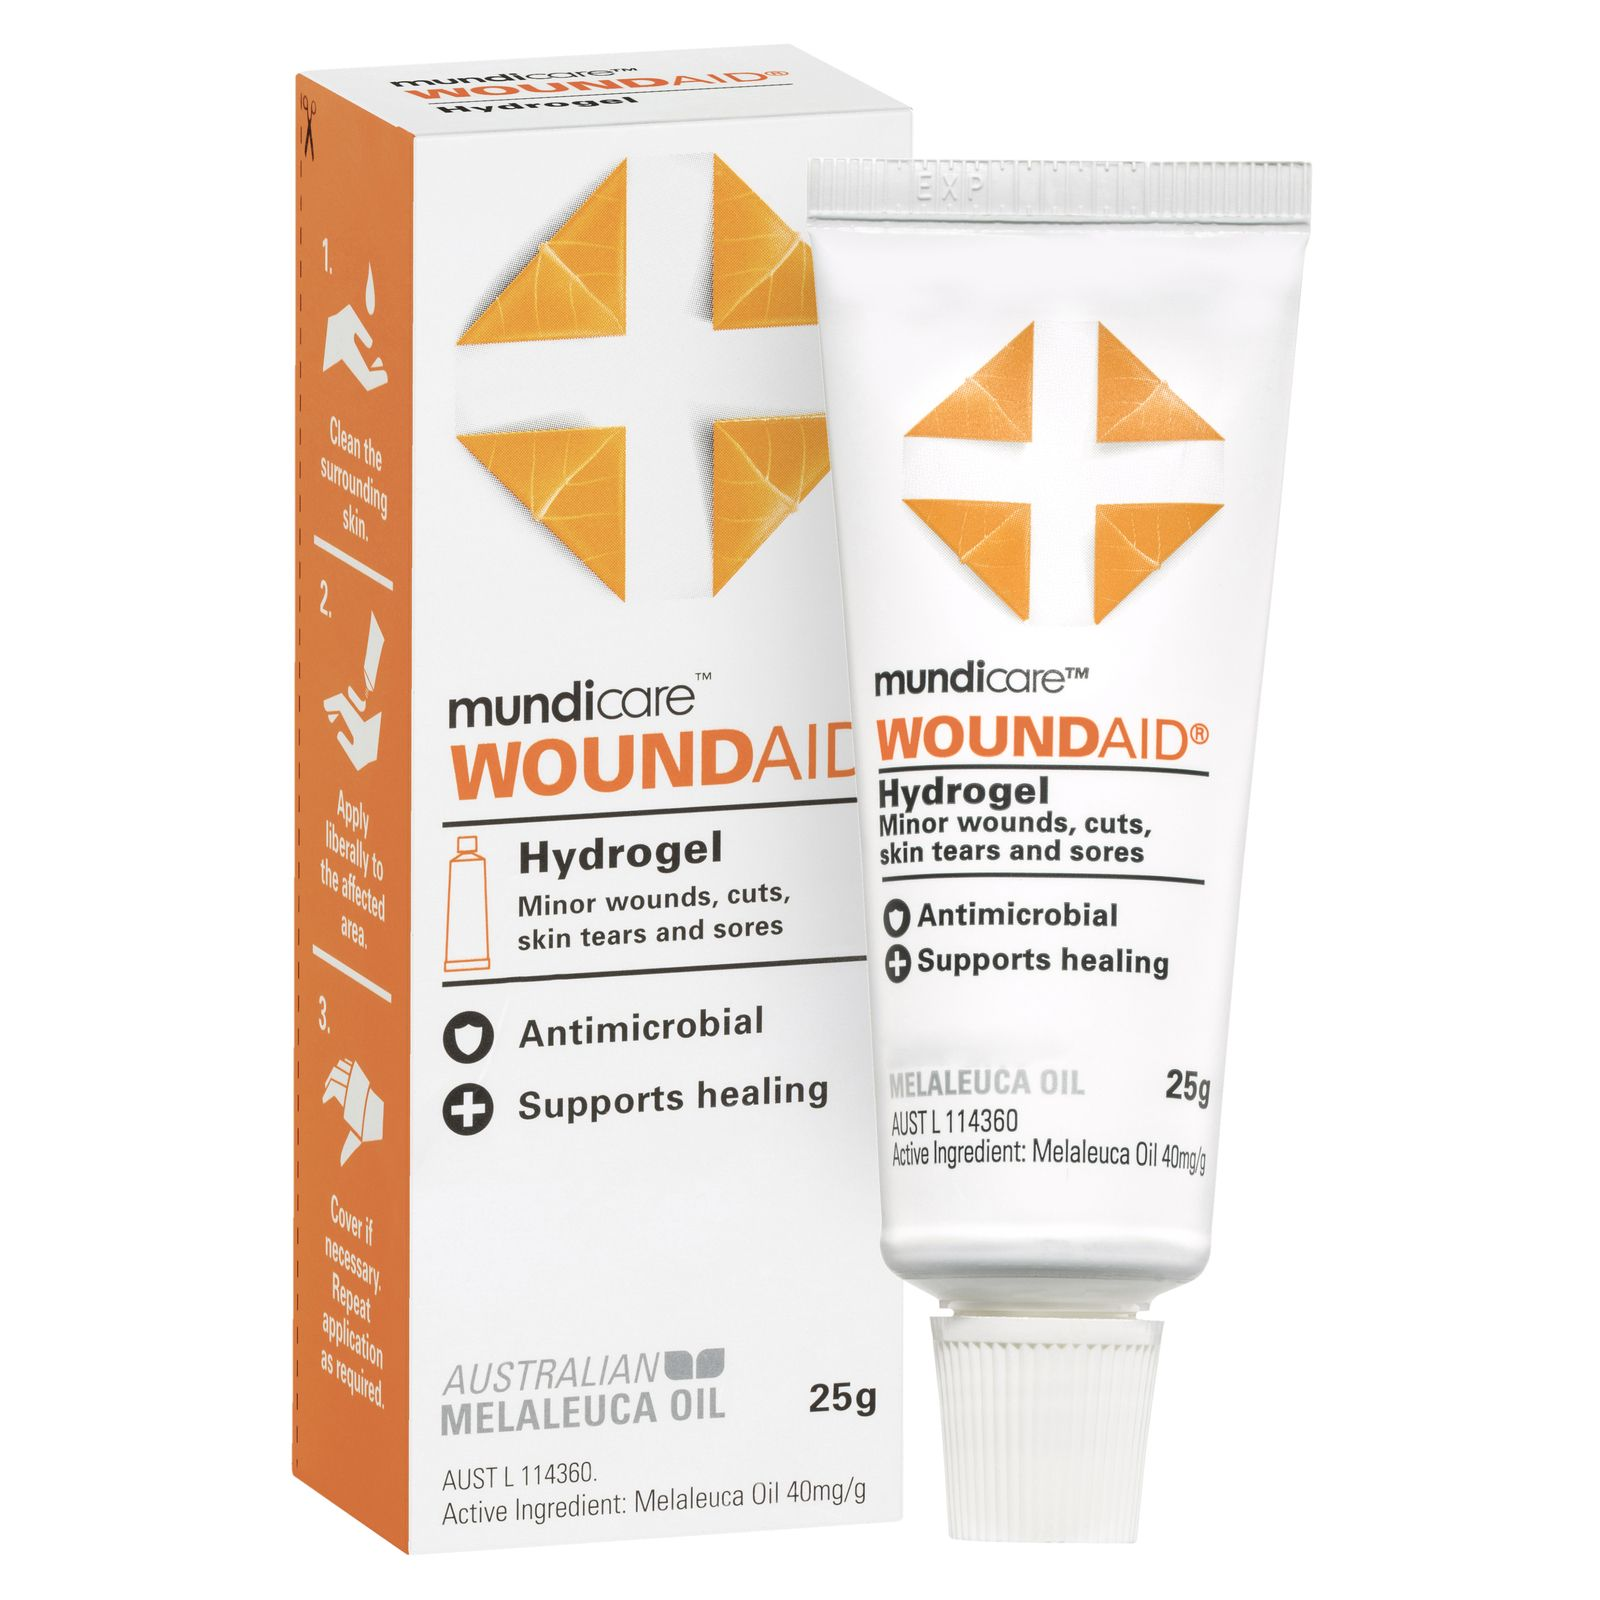 Woundaid Hydrogel 25g, each